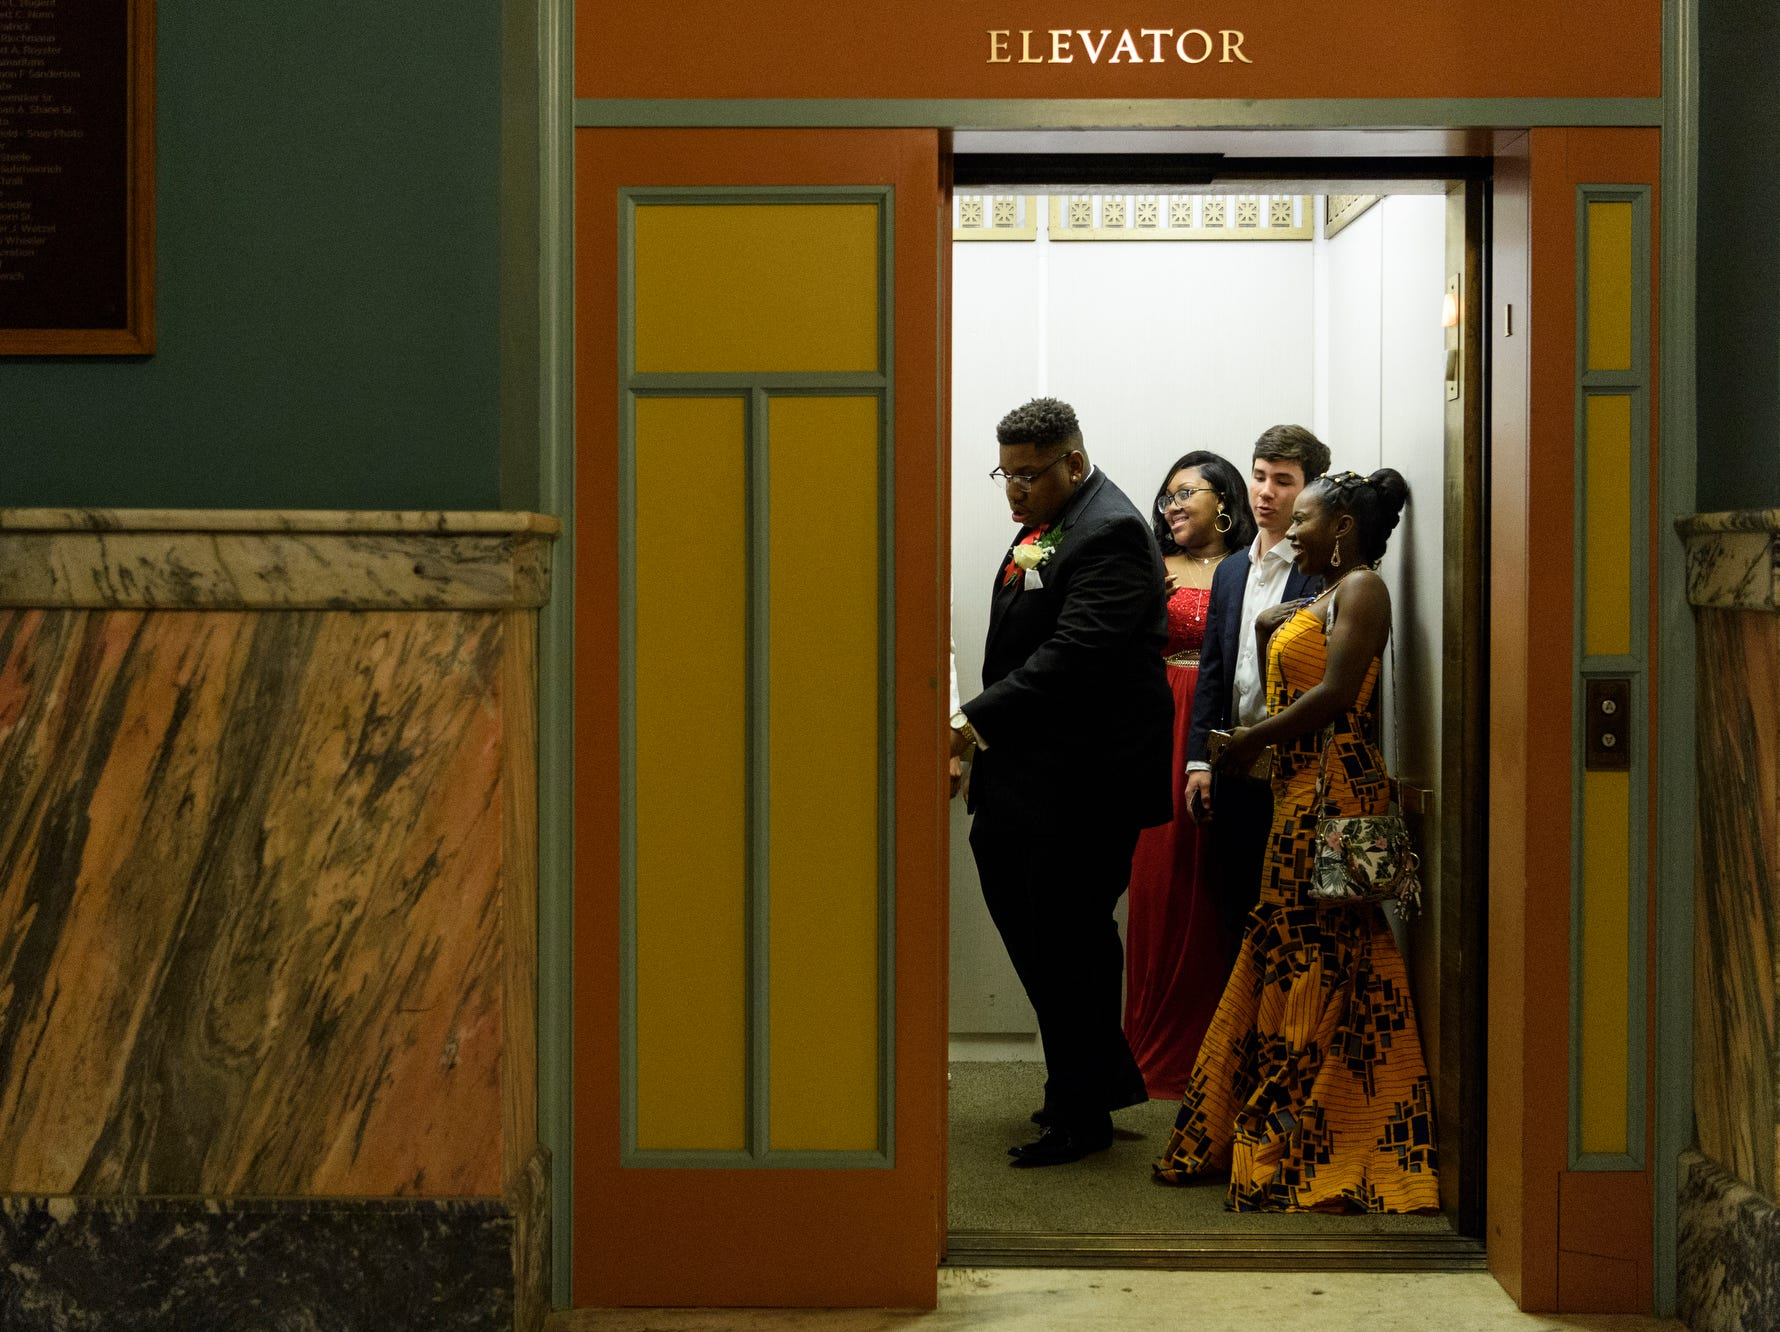 Bosse High School students take the elevator to the second floor dance room during prom at the Old Vanderburgh County Courthouse in downtown Evansville, Ind., Saturday, April 6, 2019.